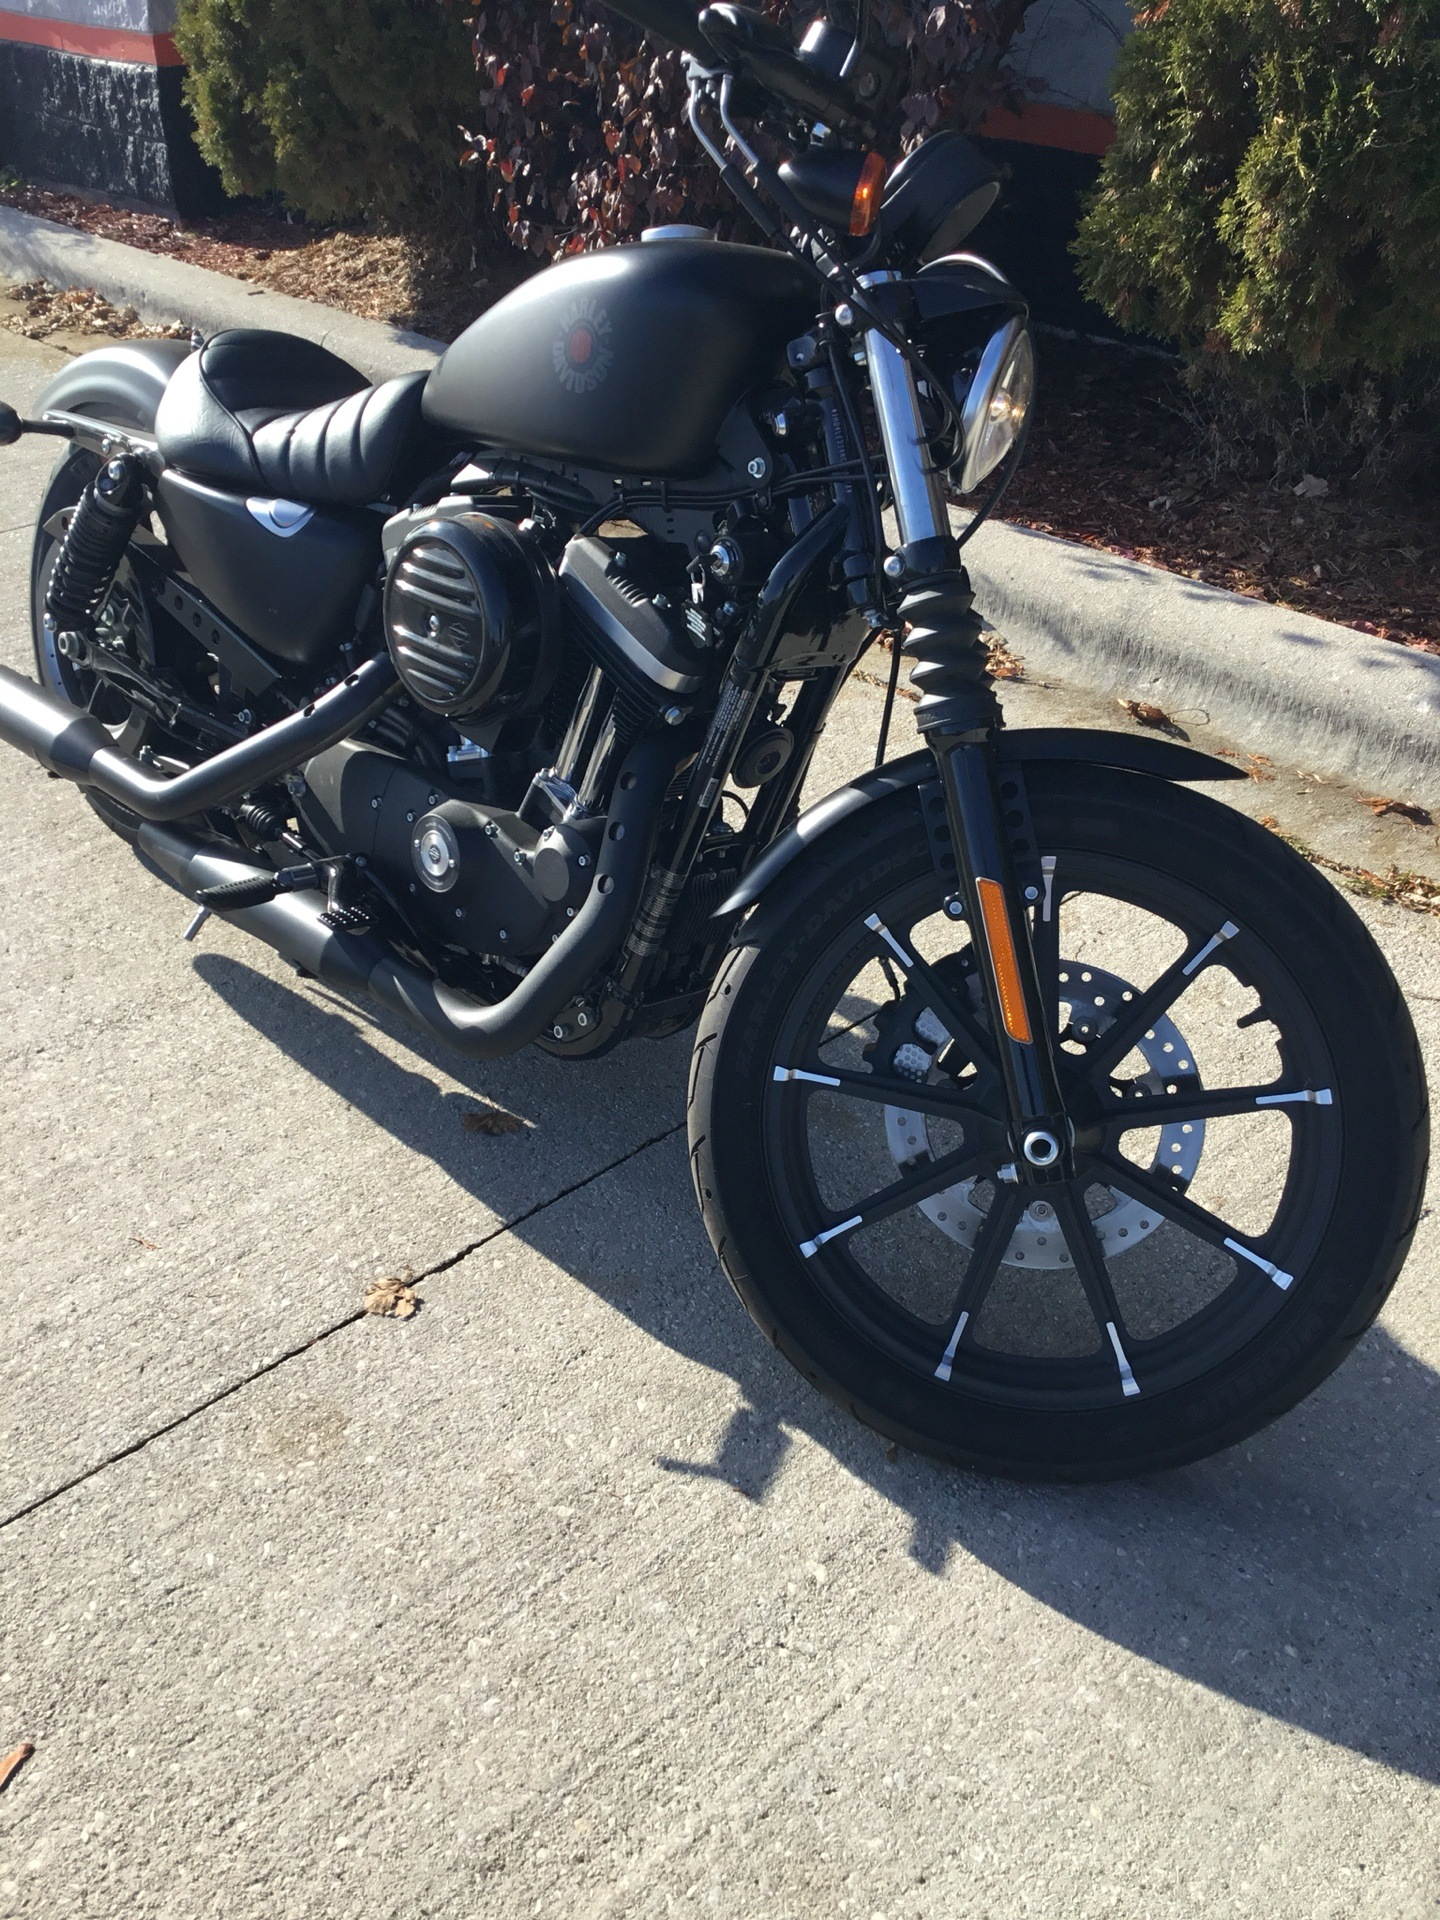 2019 Harley-Davidson XL883N in Sheboygan, Wisconsin - Photo 4